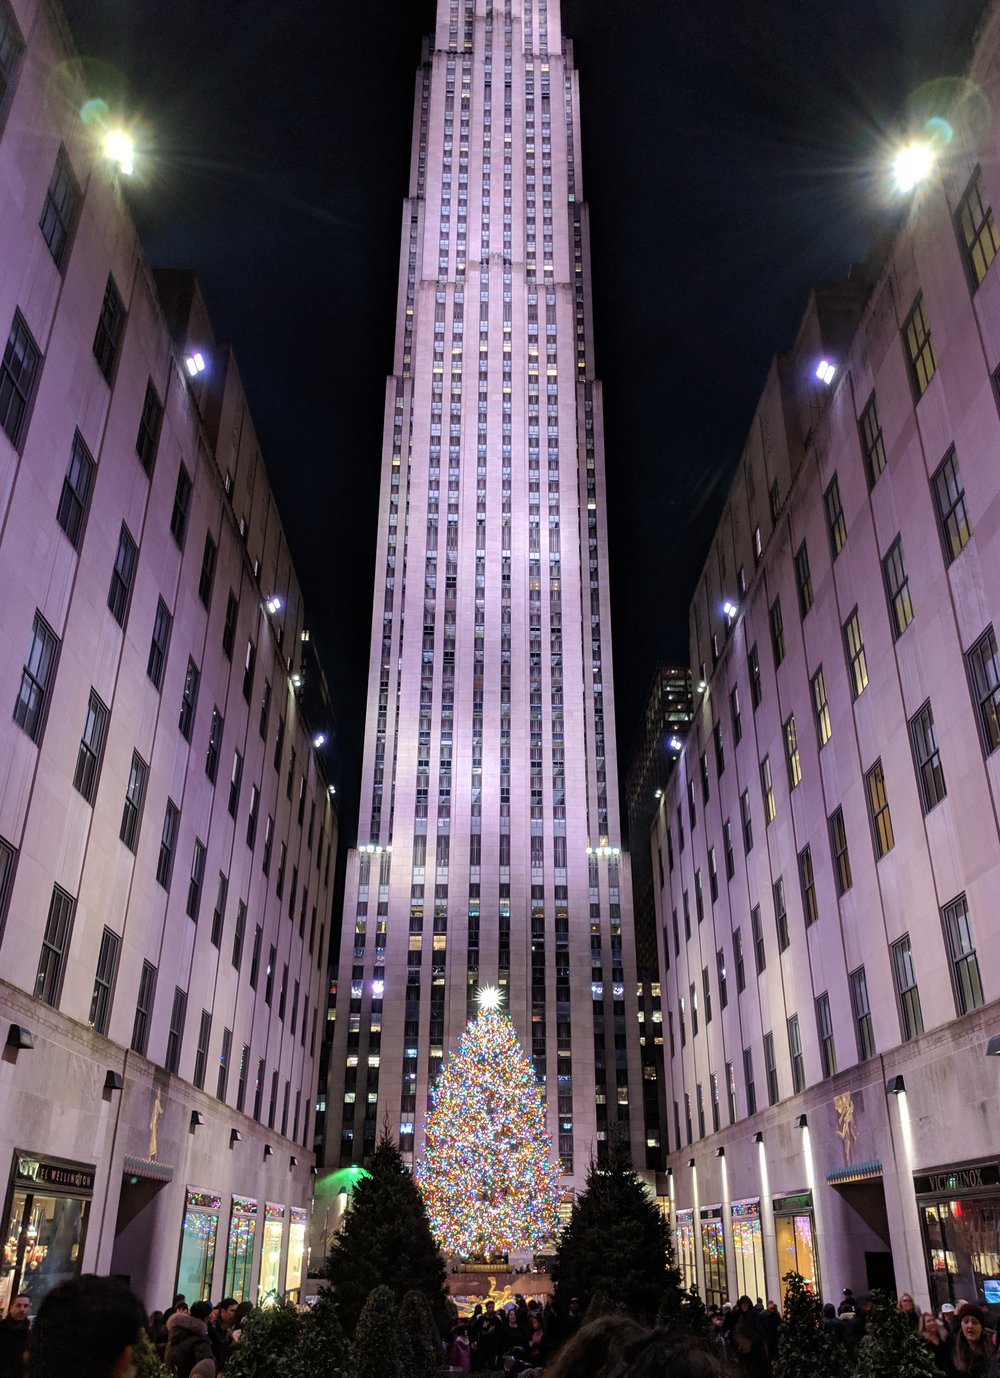 And last but not least, Rockefeller Plaza!